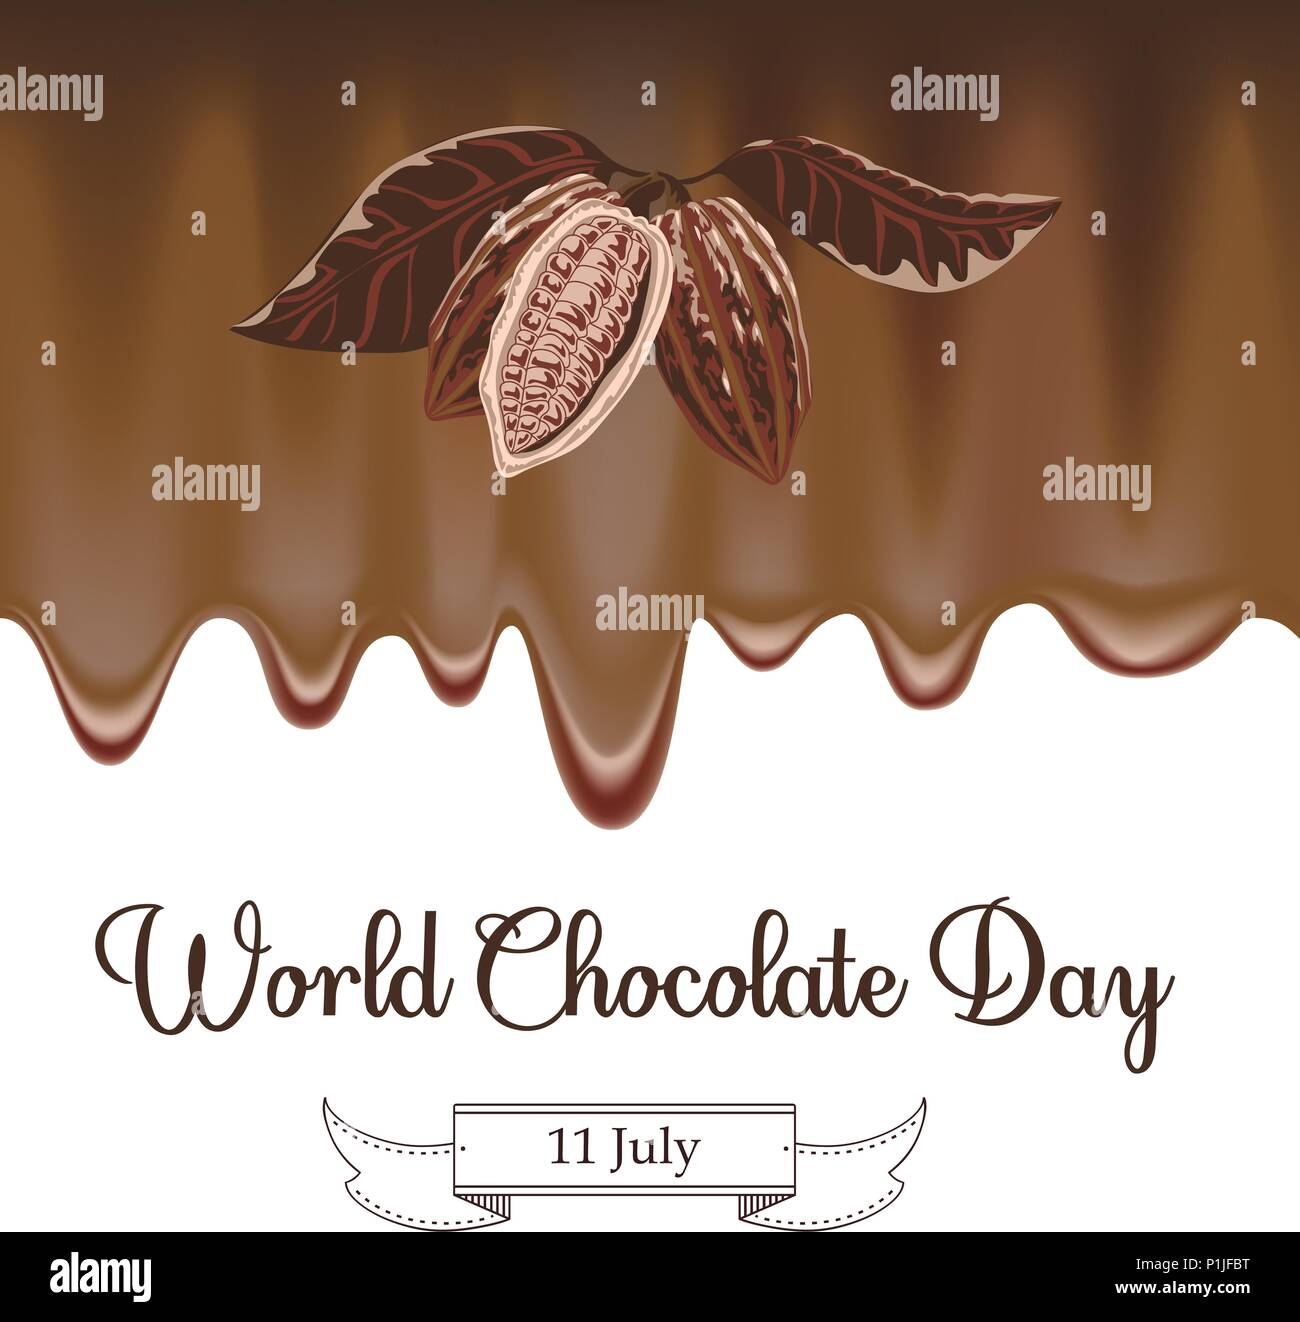 Vector illustration for World Chocolate Day in creative mesh background. Happy chocolate day handwritten lettering. - Stock Vector